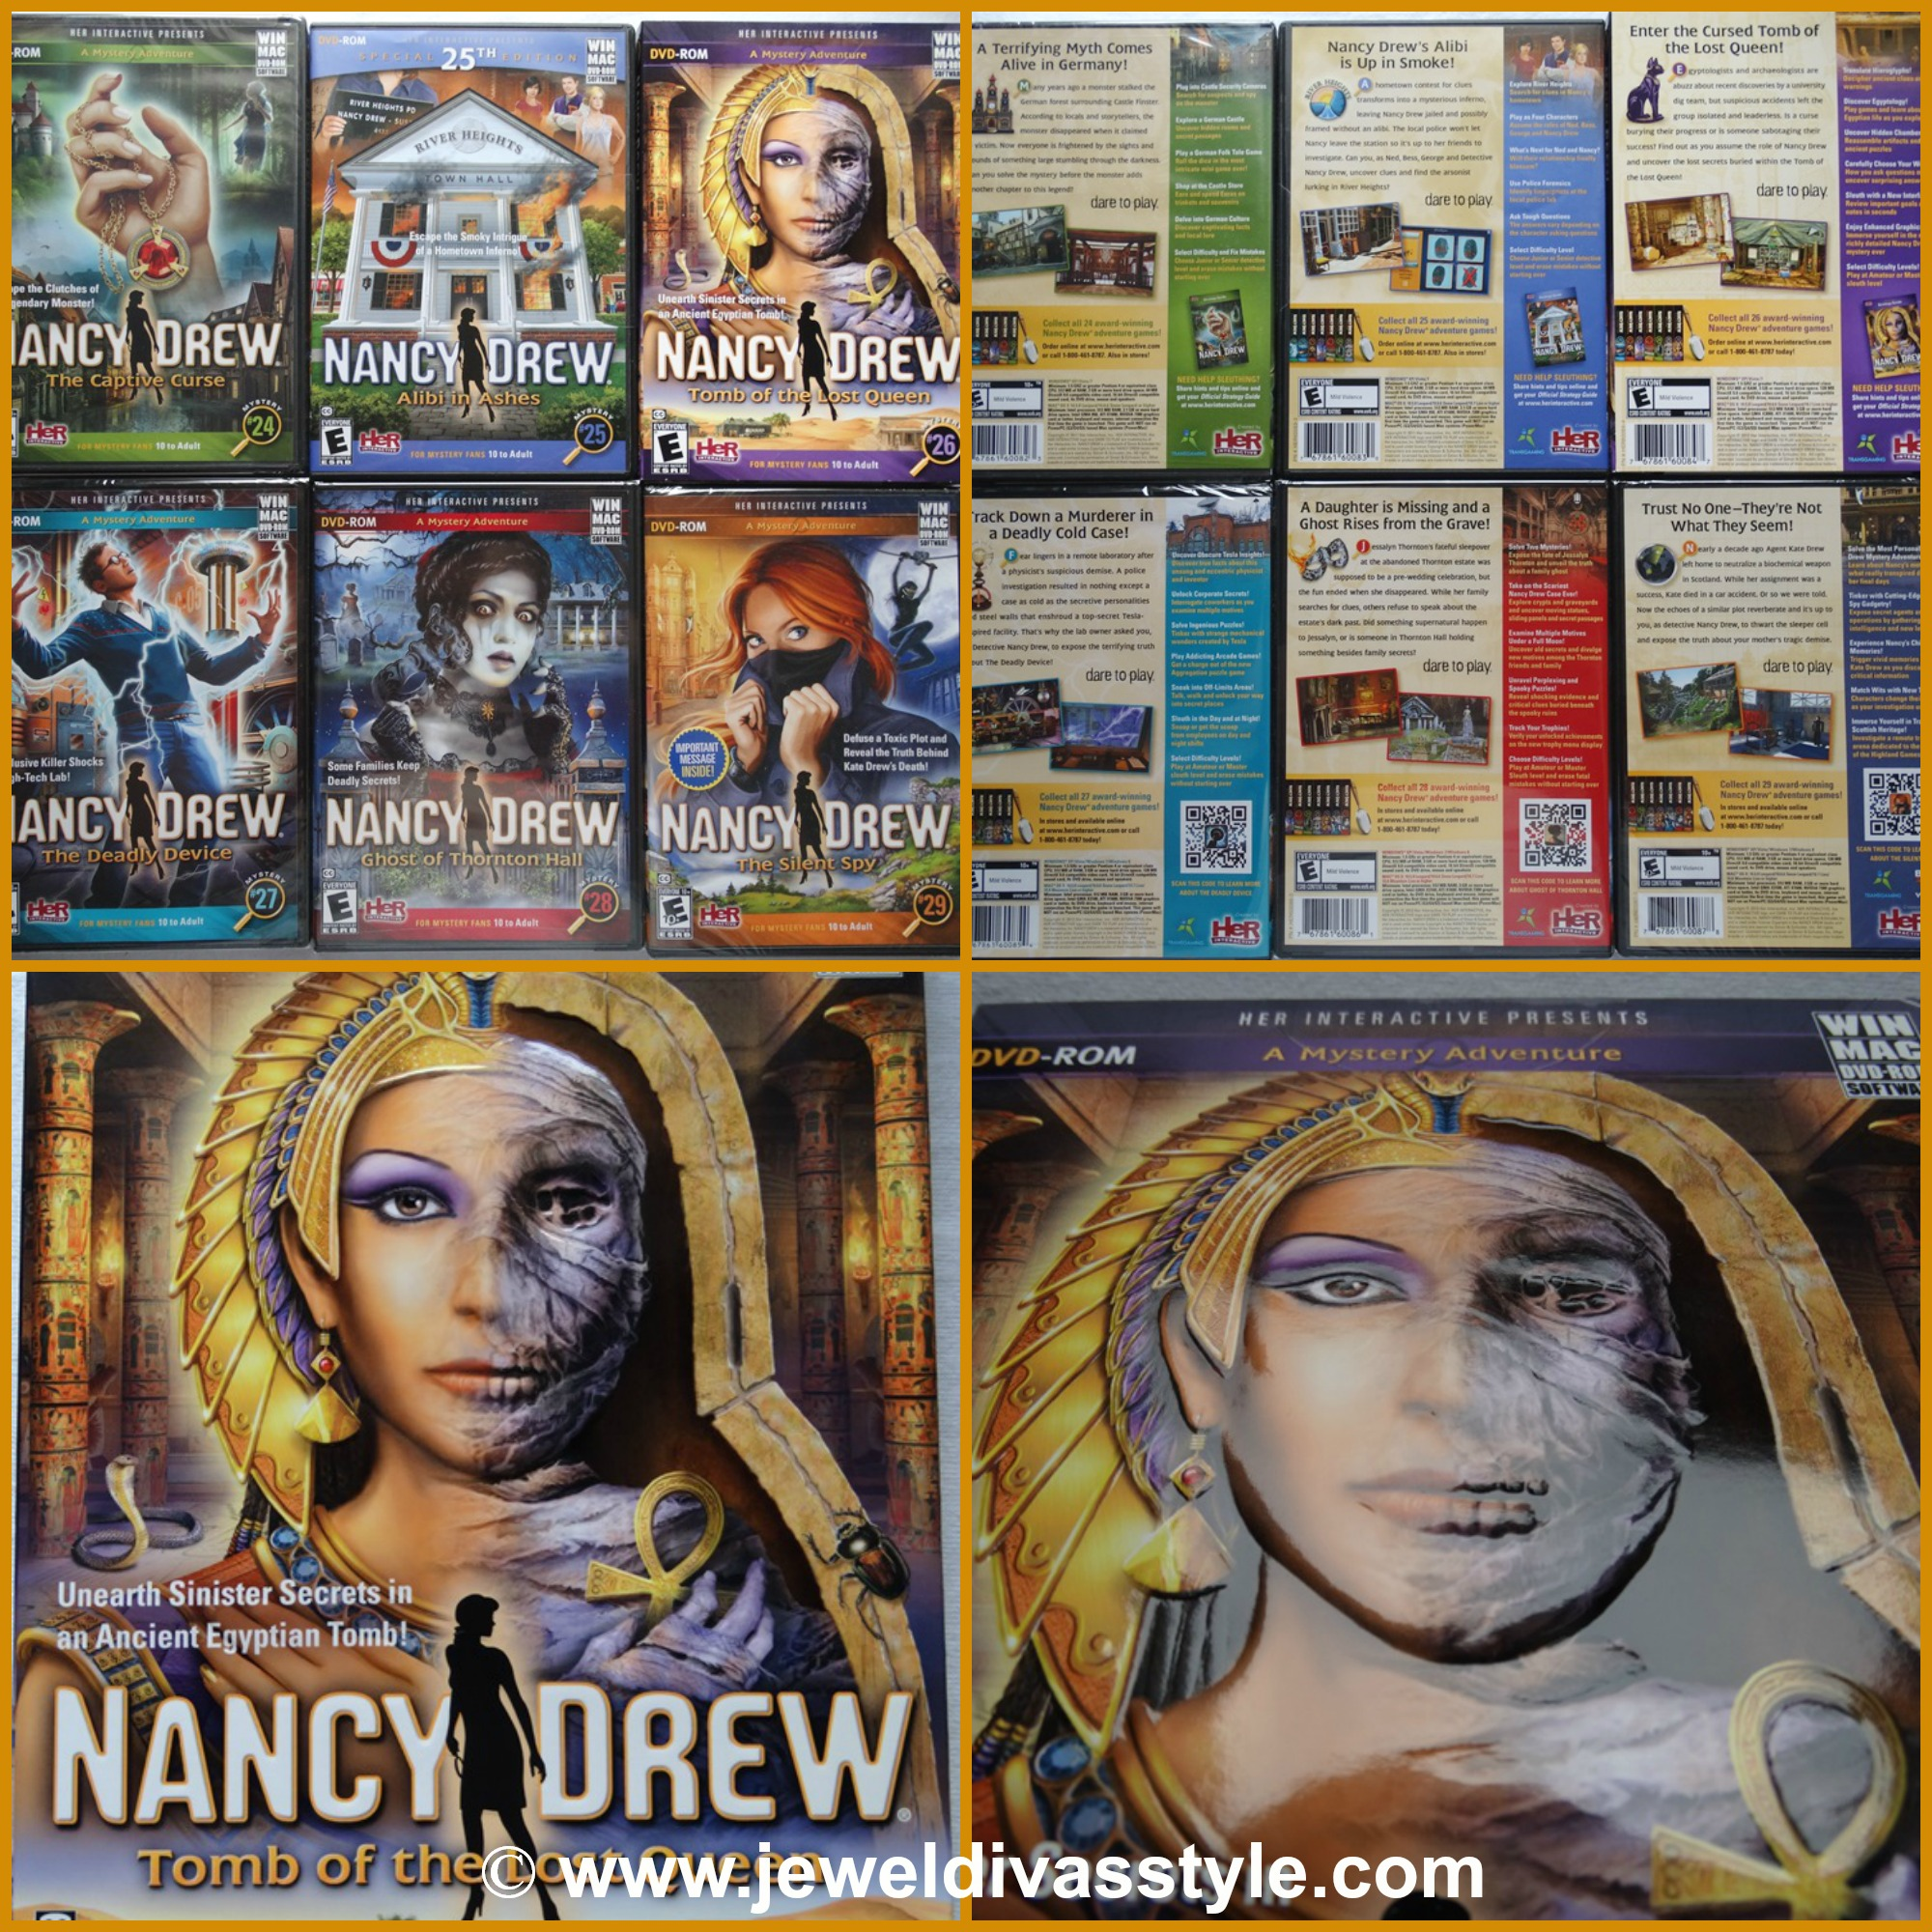 MY OBSESSIONS: Nancy Drew PC Games